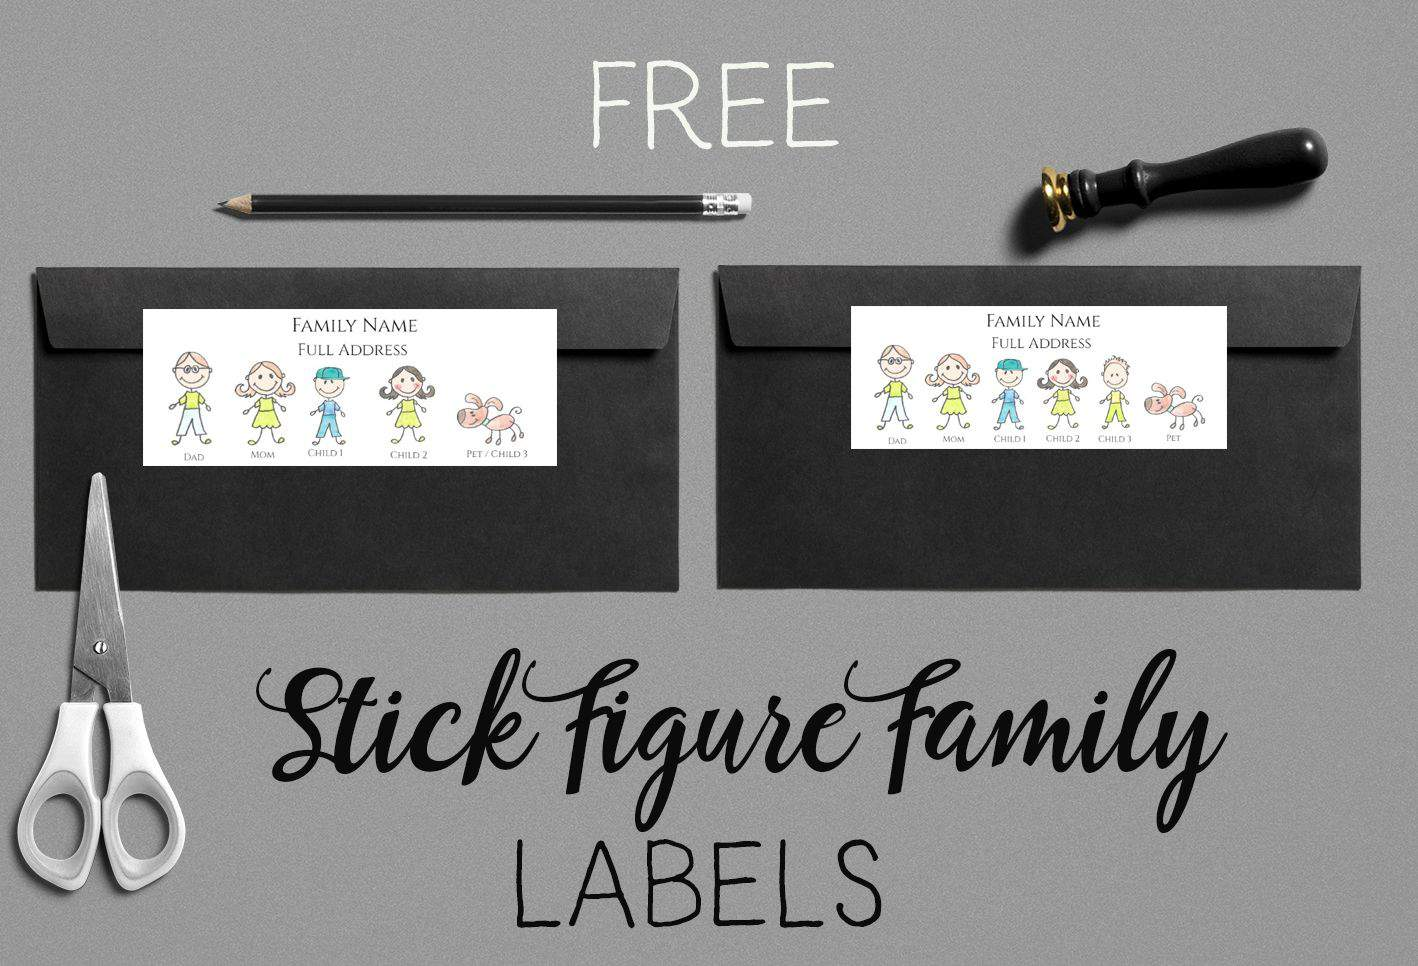 Stick figure family generator | Create labels or stickers ...